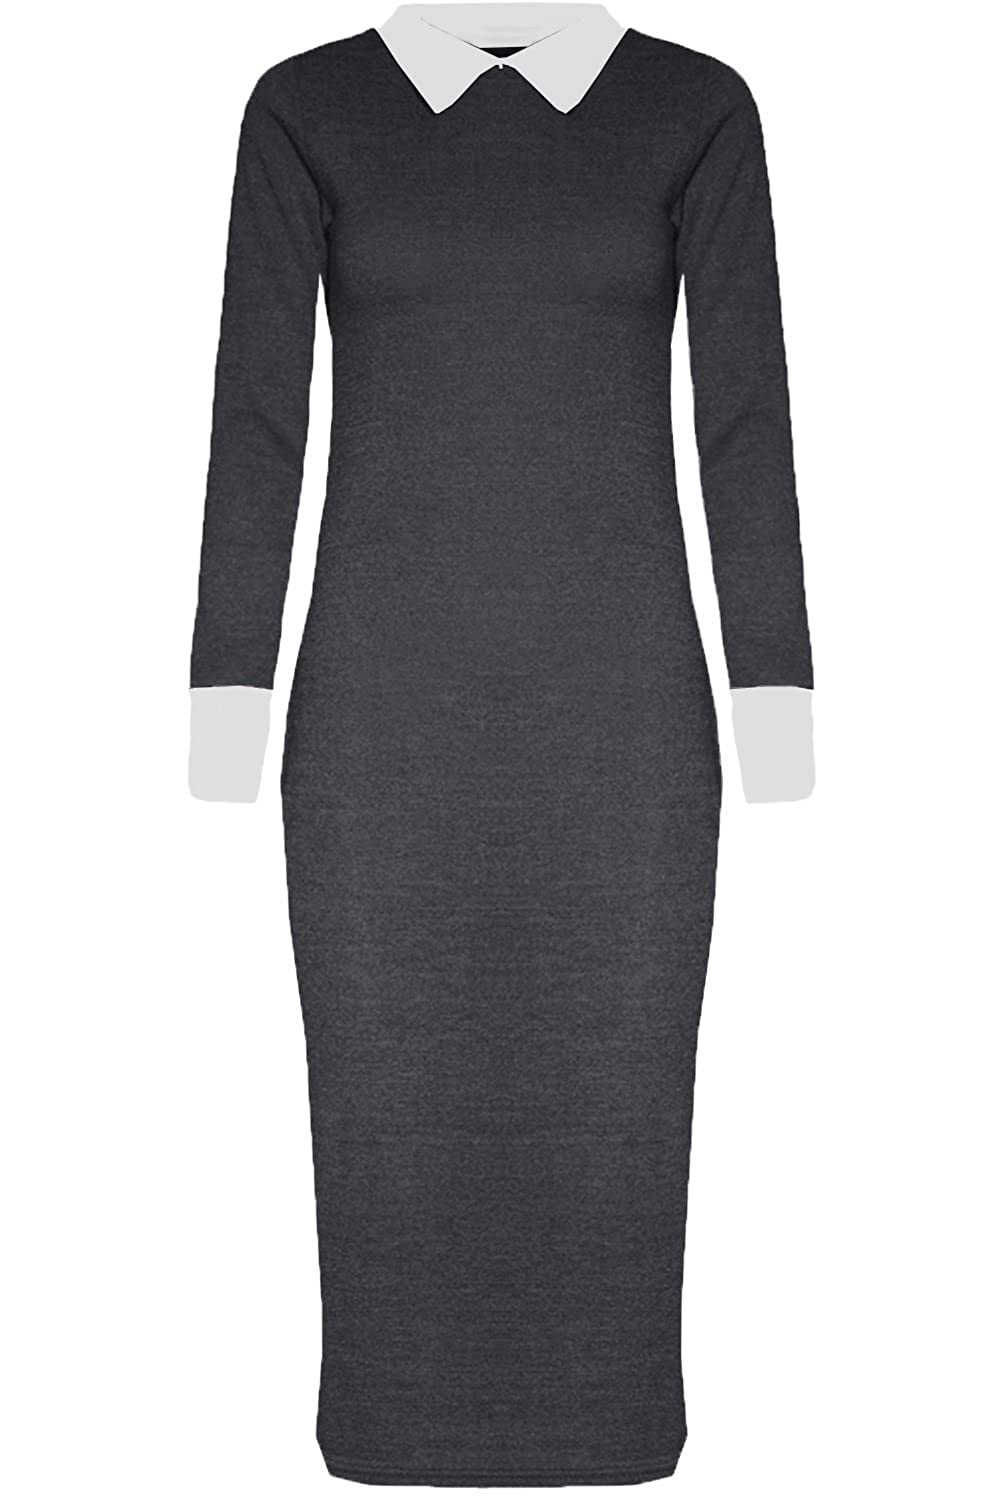 Black dress with white peter pan collar - New Womens Peter Pan Collar Long Bodycon Midi Dress At Amazon Women S Clothing Store